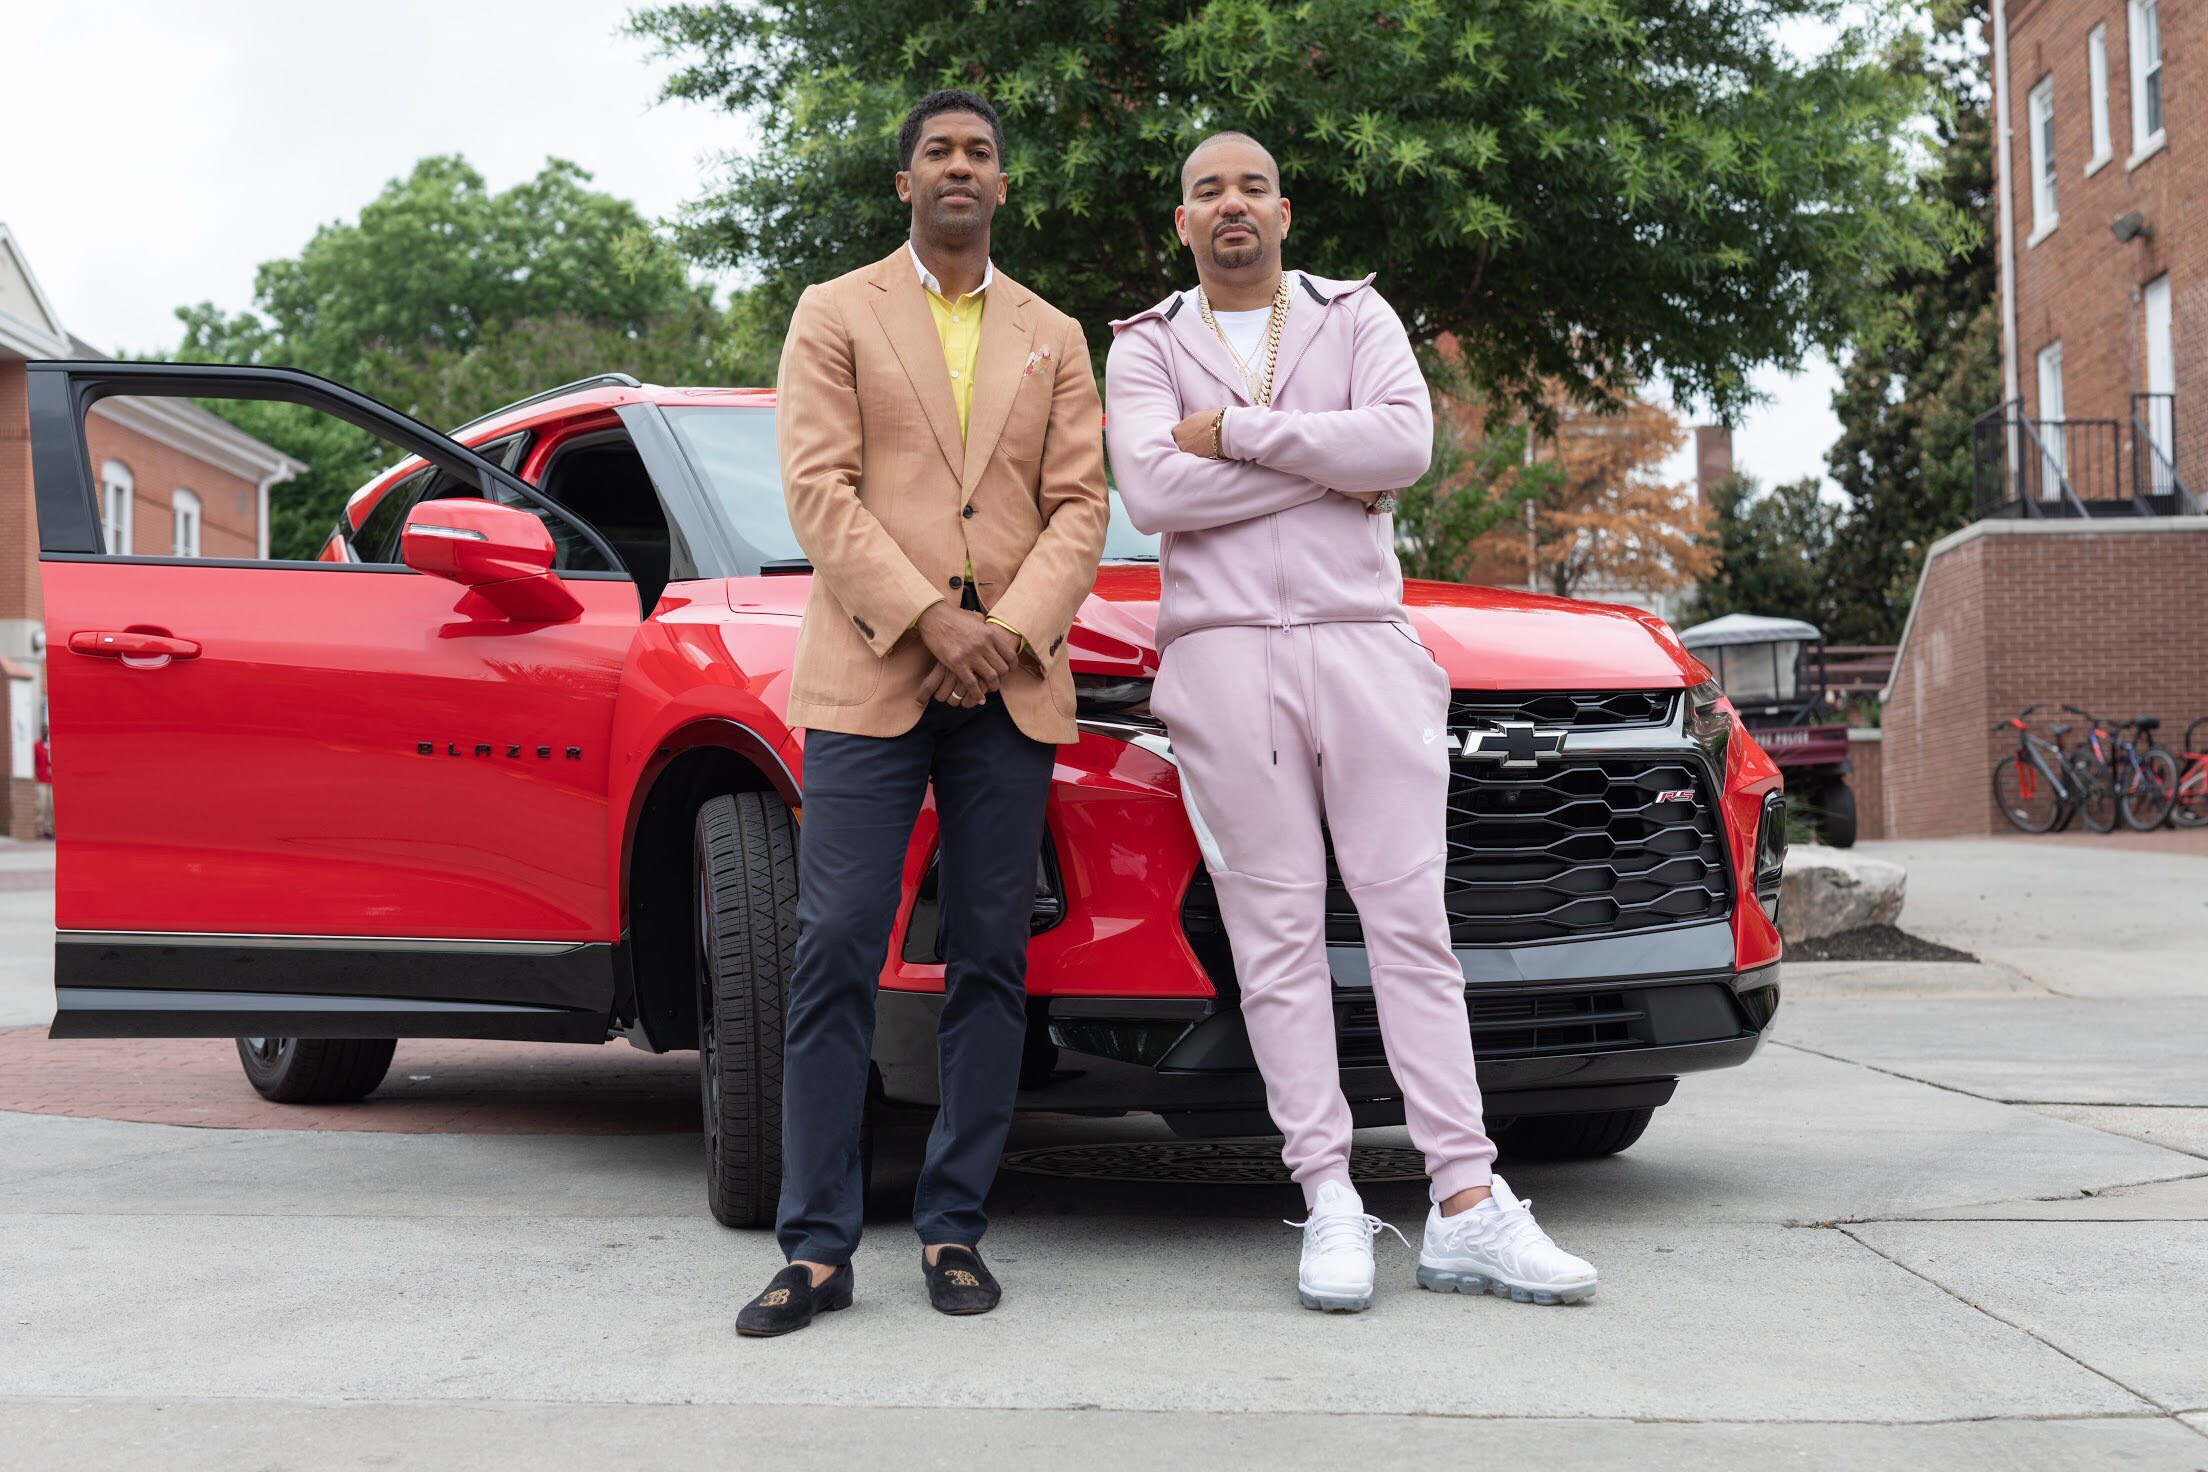 Fonzworth Bentley and DJ Envy